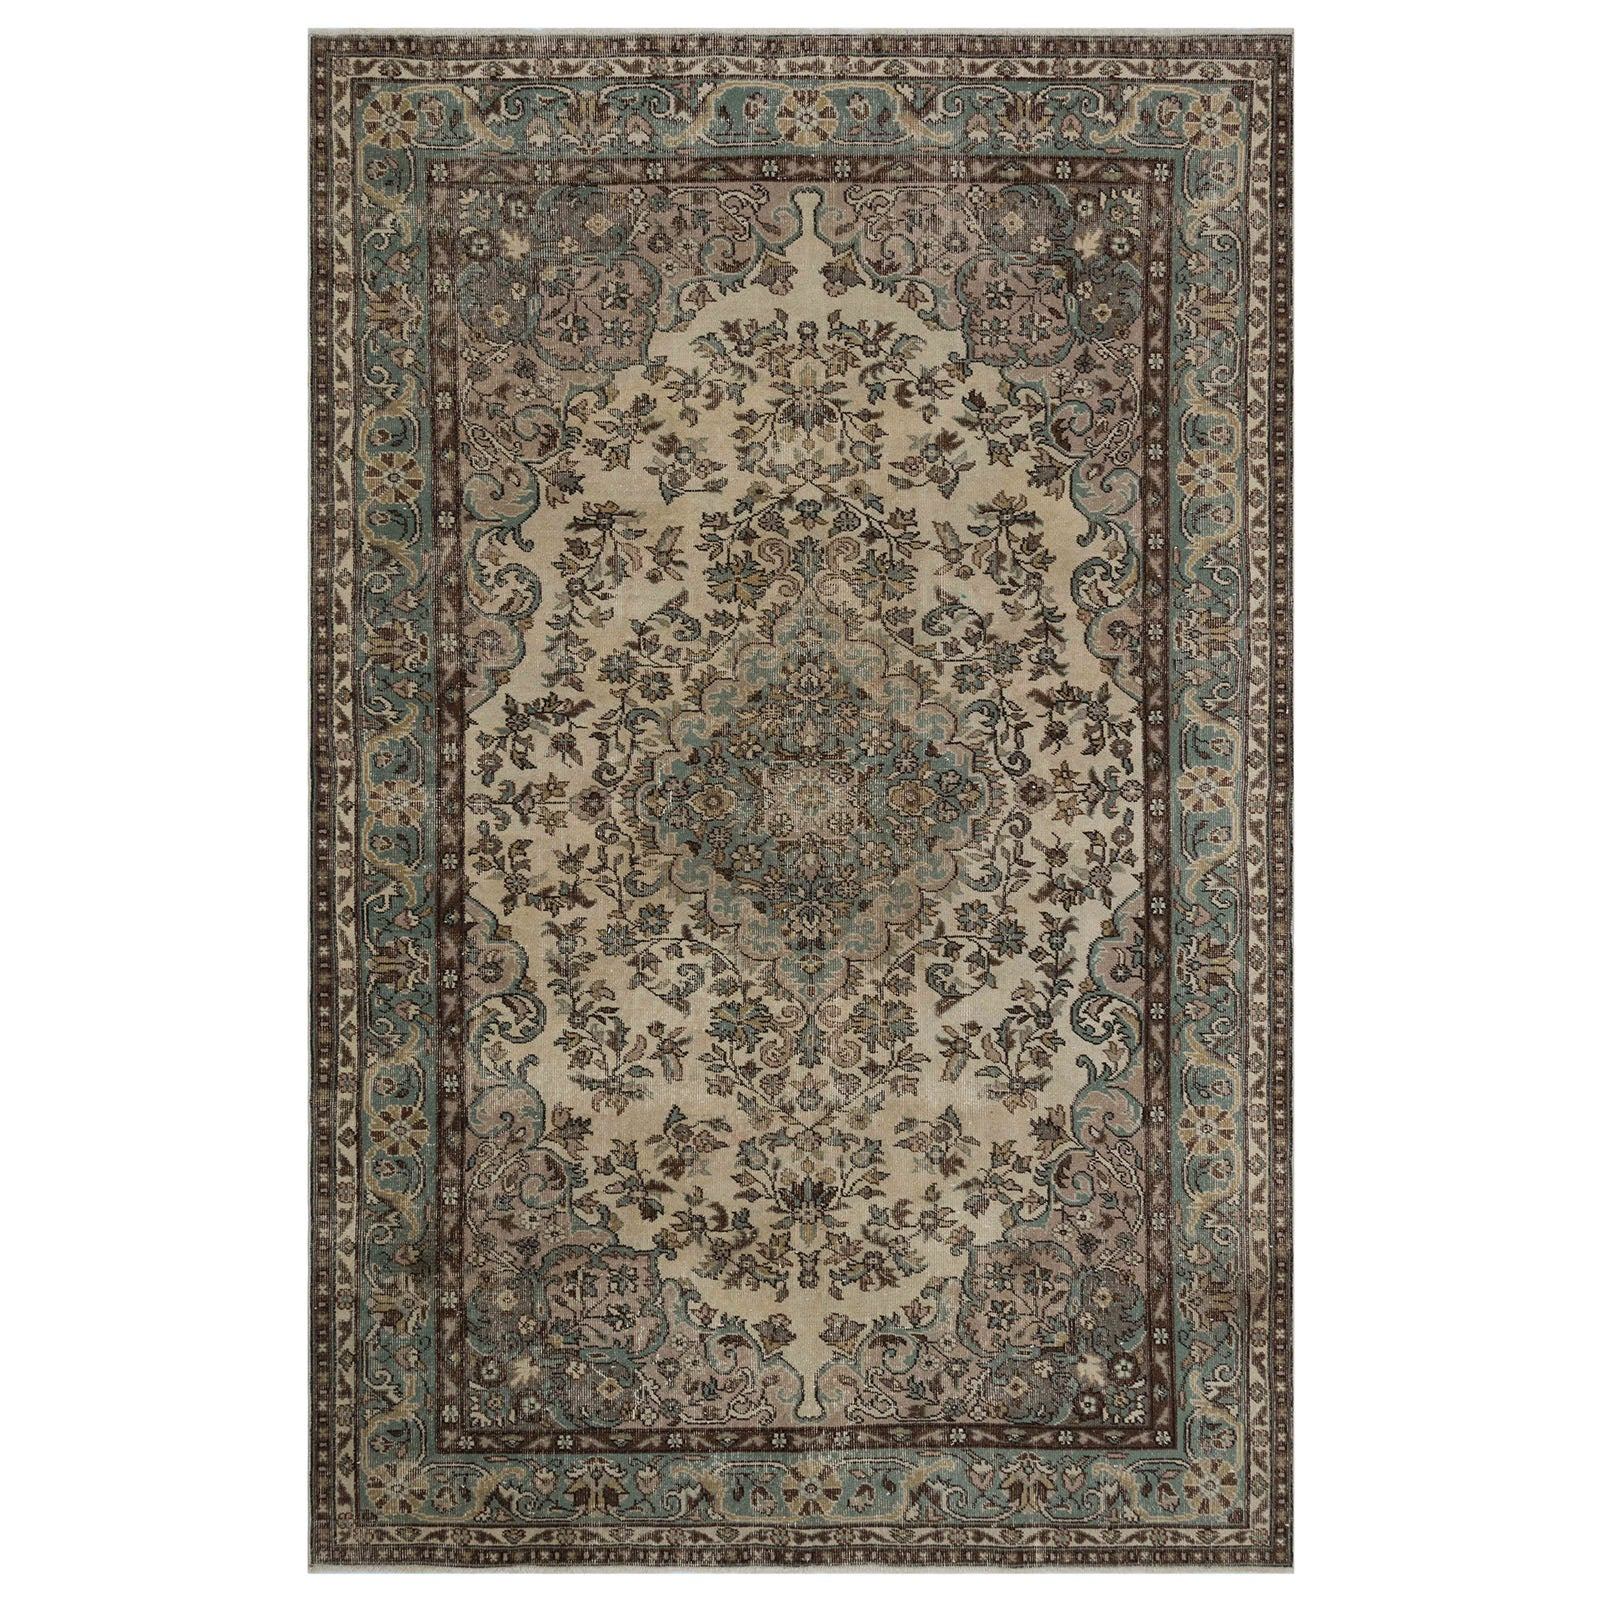 Hali 200X314 CM Bursa Handmade over dyed rug 1800 -  200*314 سجاده بورصة صناعة يدوية على بساط مصبوغ - Shop Online Furniture and Home Decor Store in Dubai, UAE at ebarza